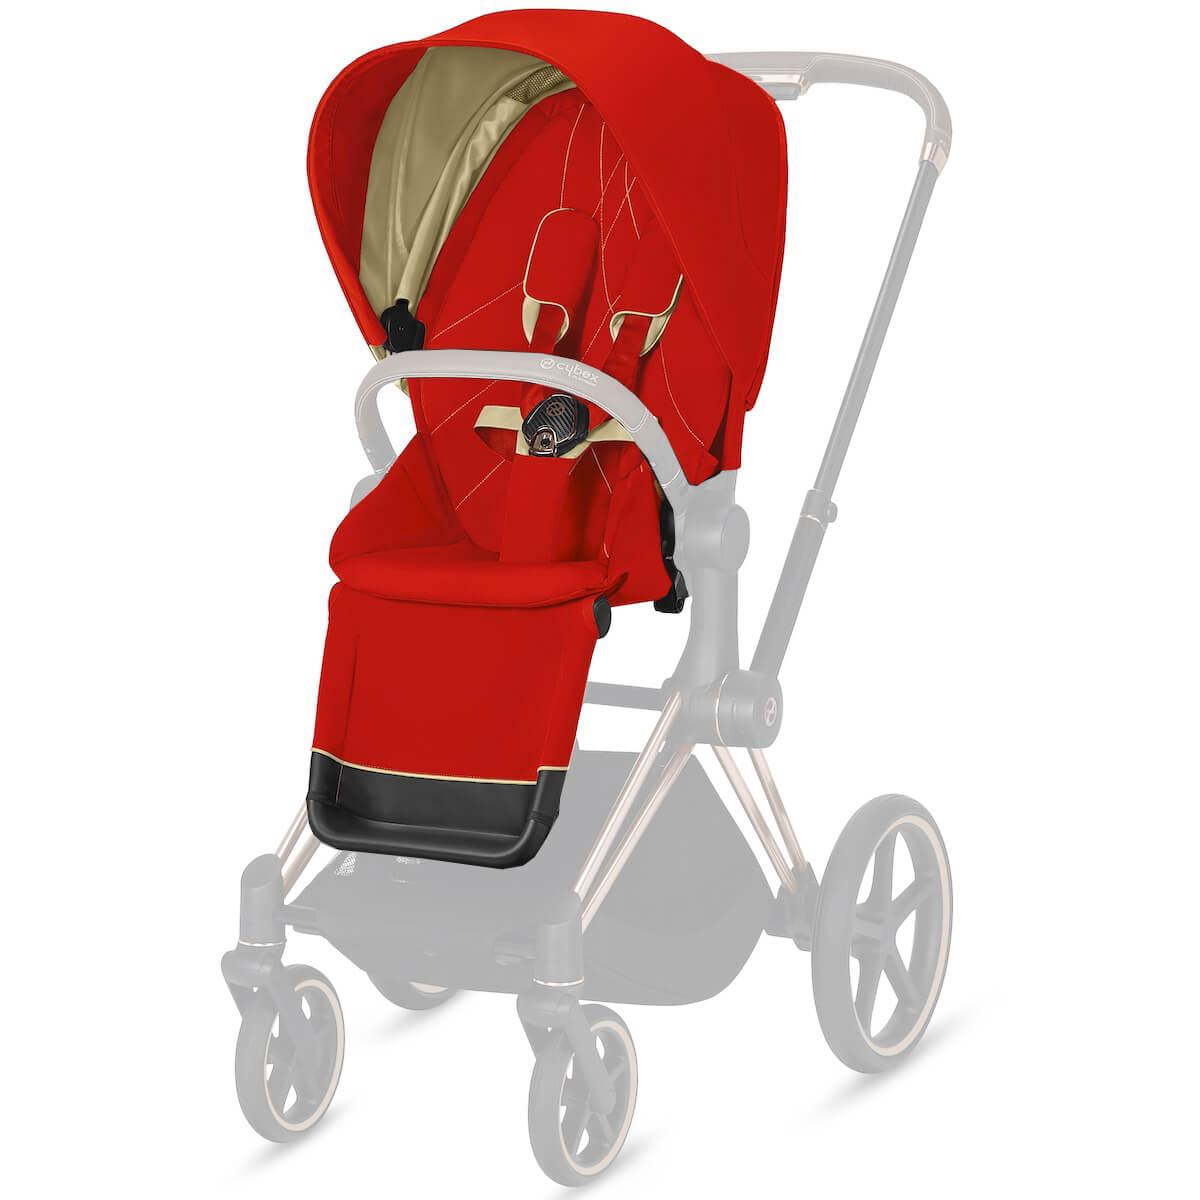 Asiento-pack silla PRIAM Cybex Autumn Gold-burnt red